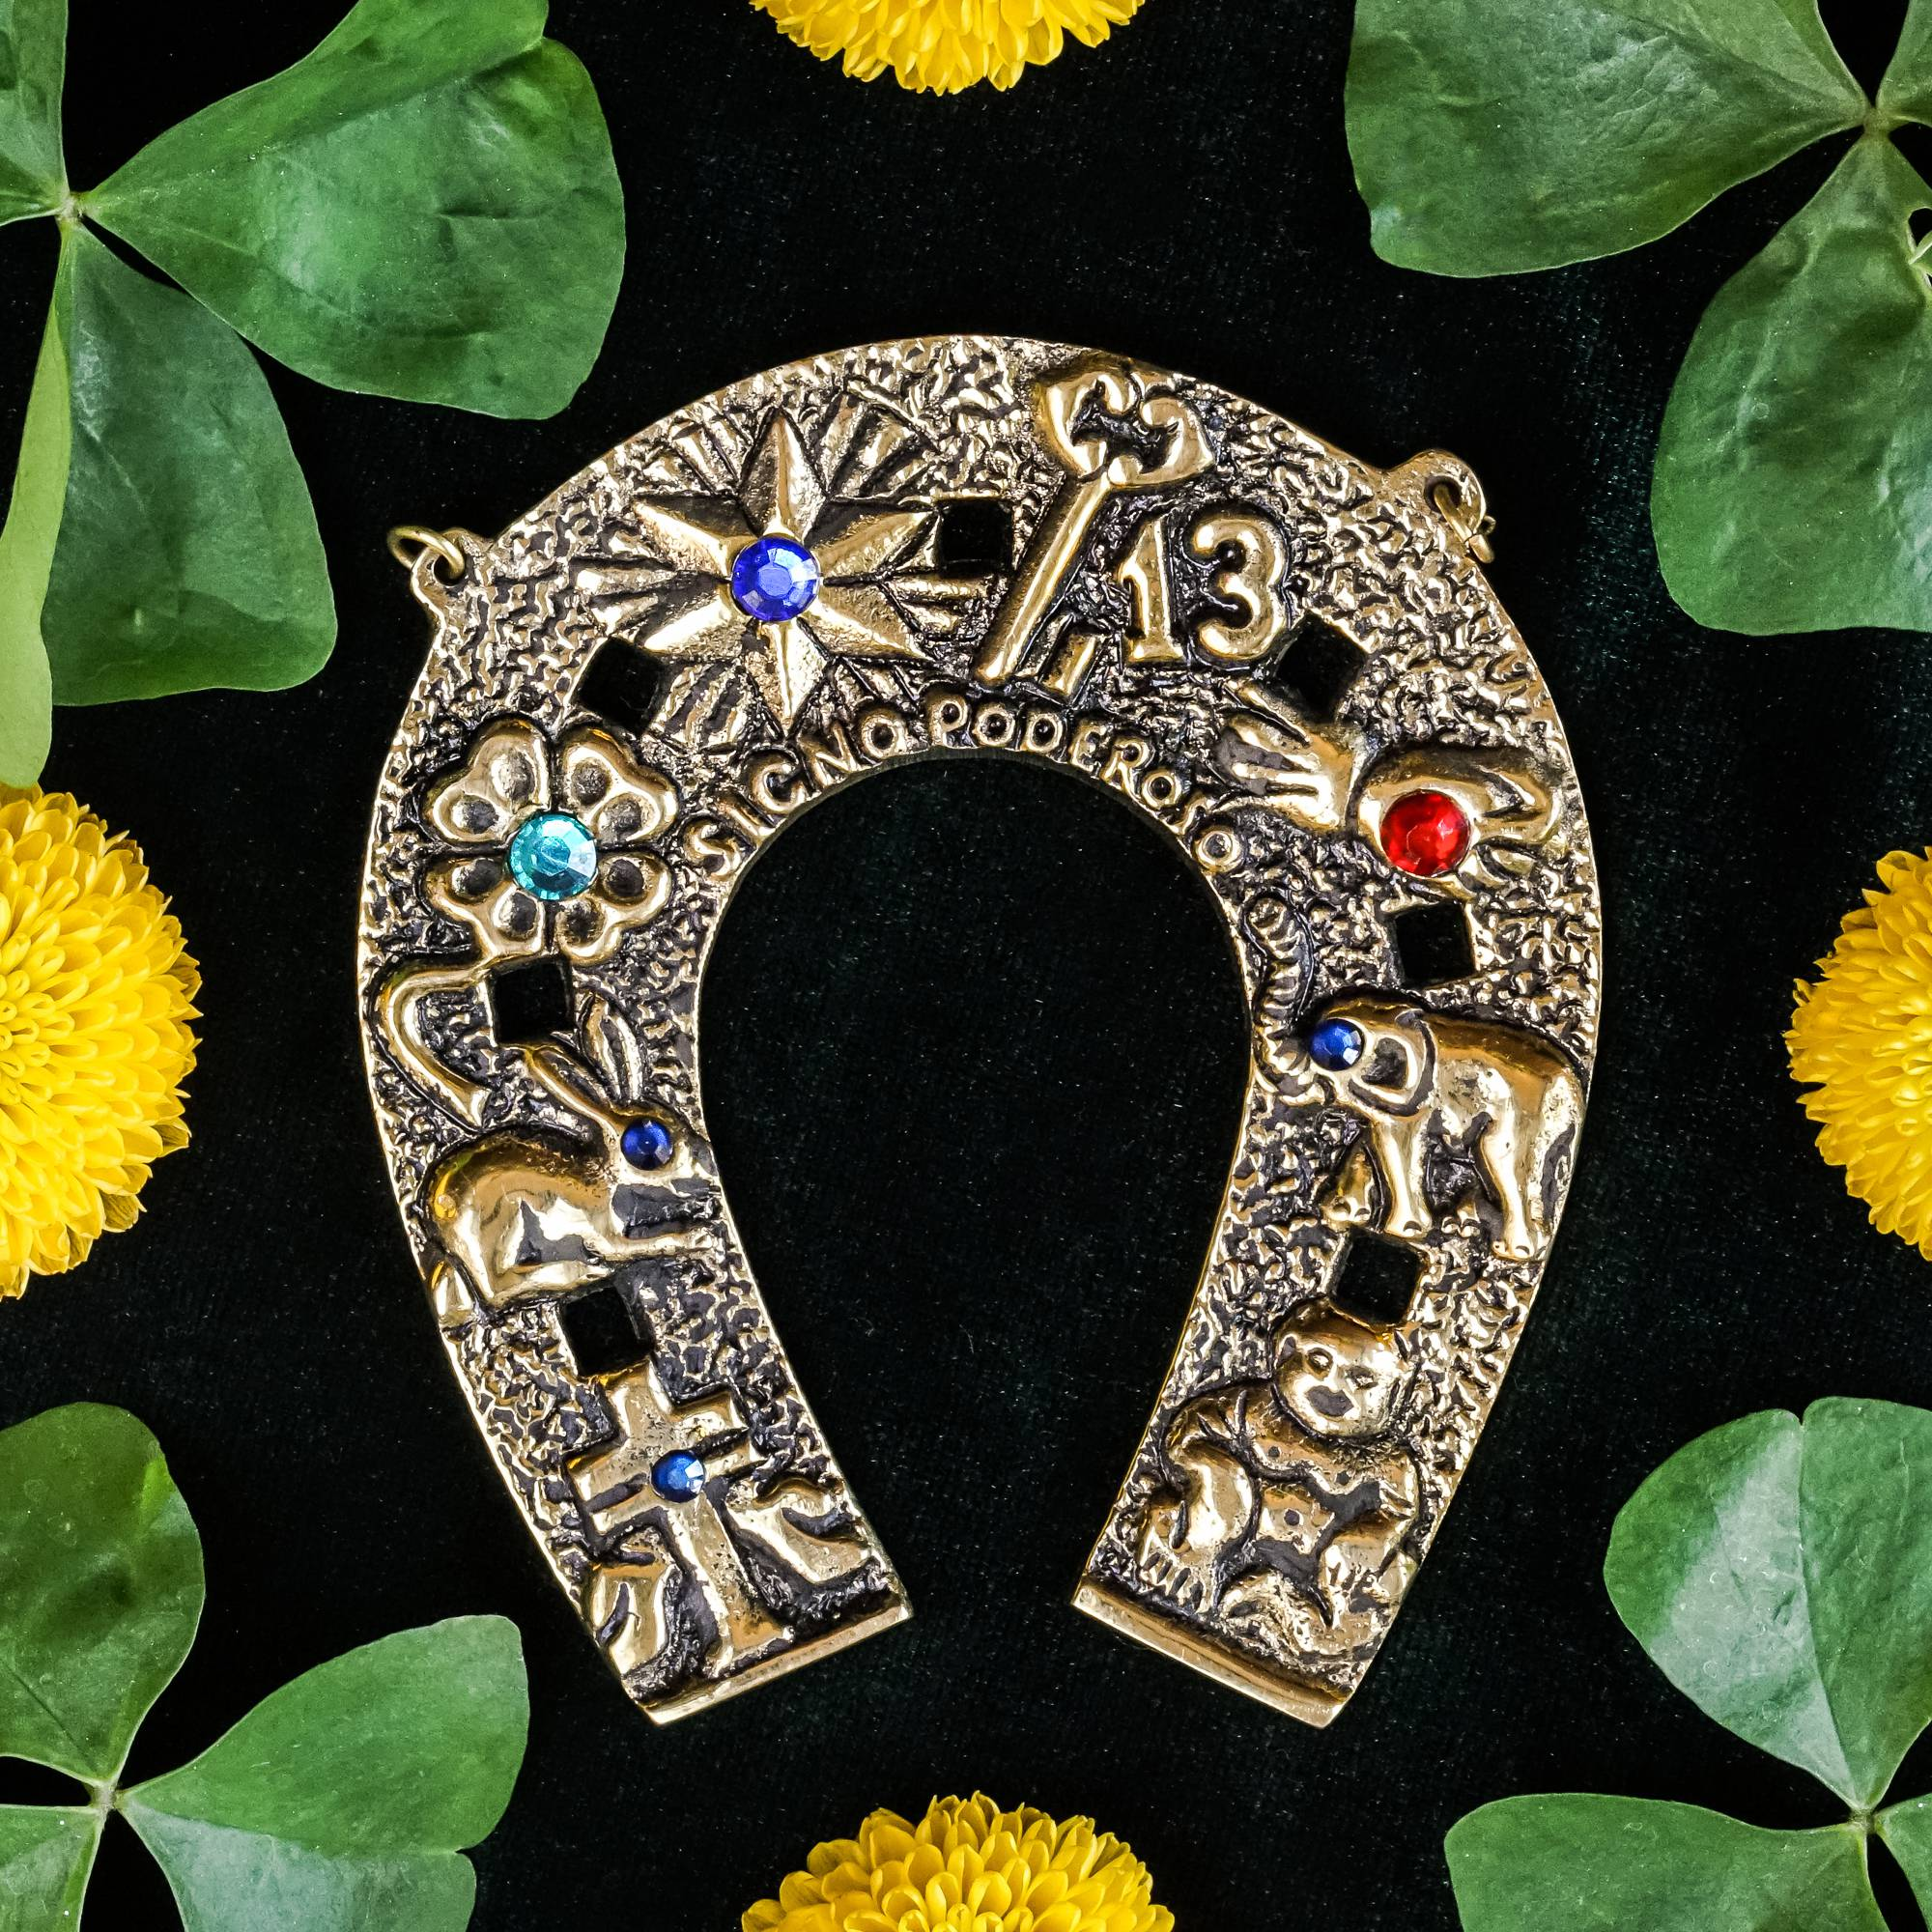 Brass horseshoe wall hanging for good luck and protection biocorpaavc Choice Image